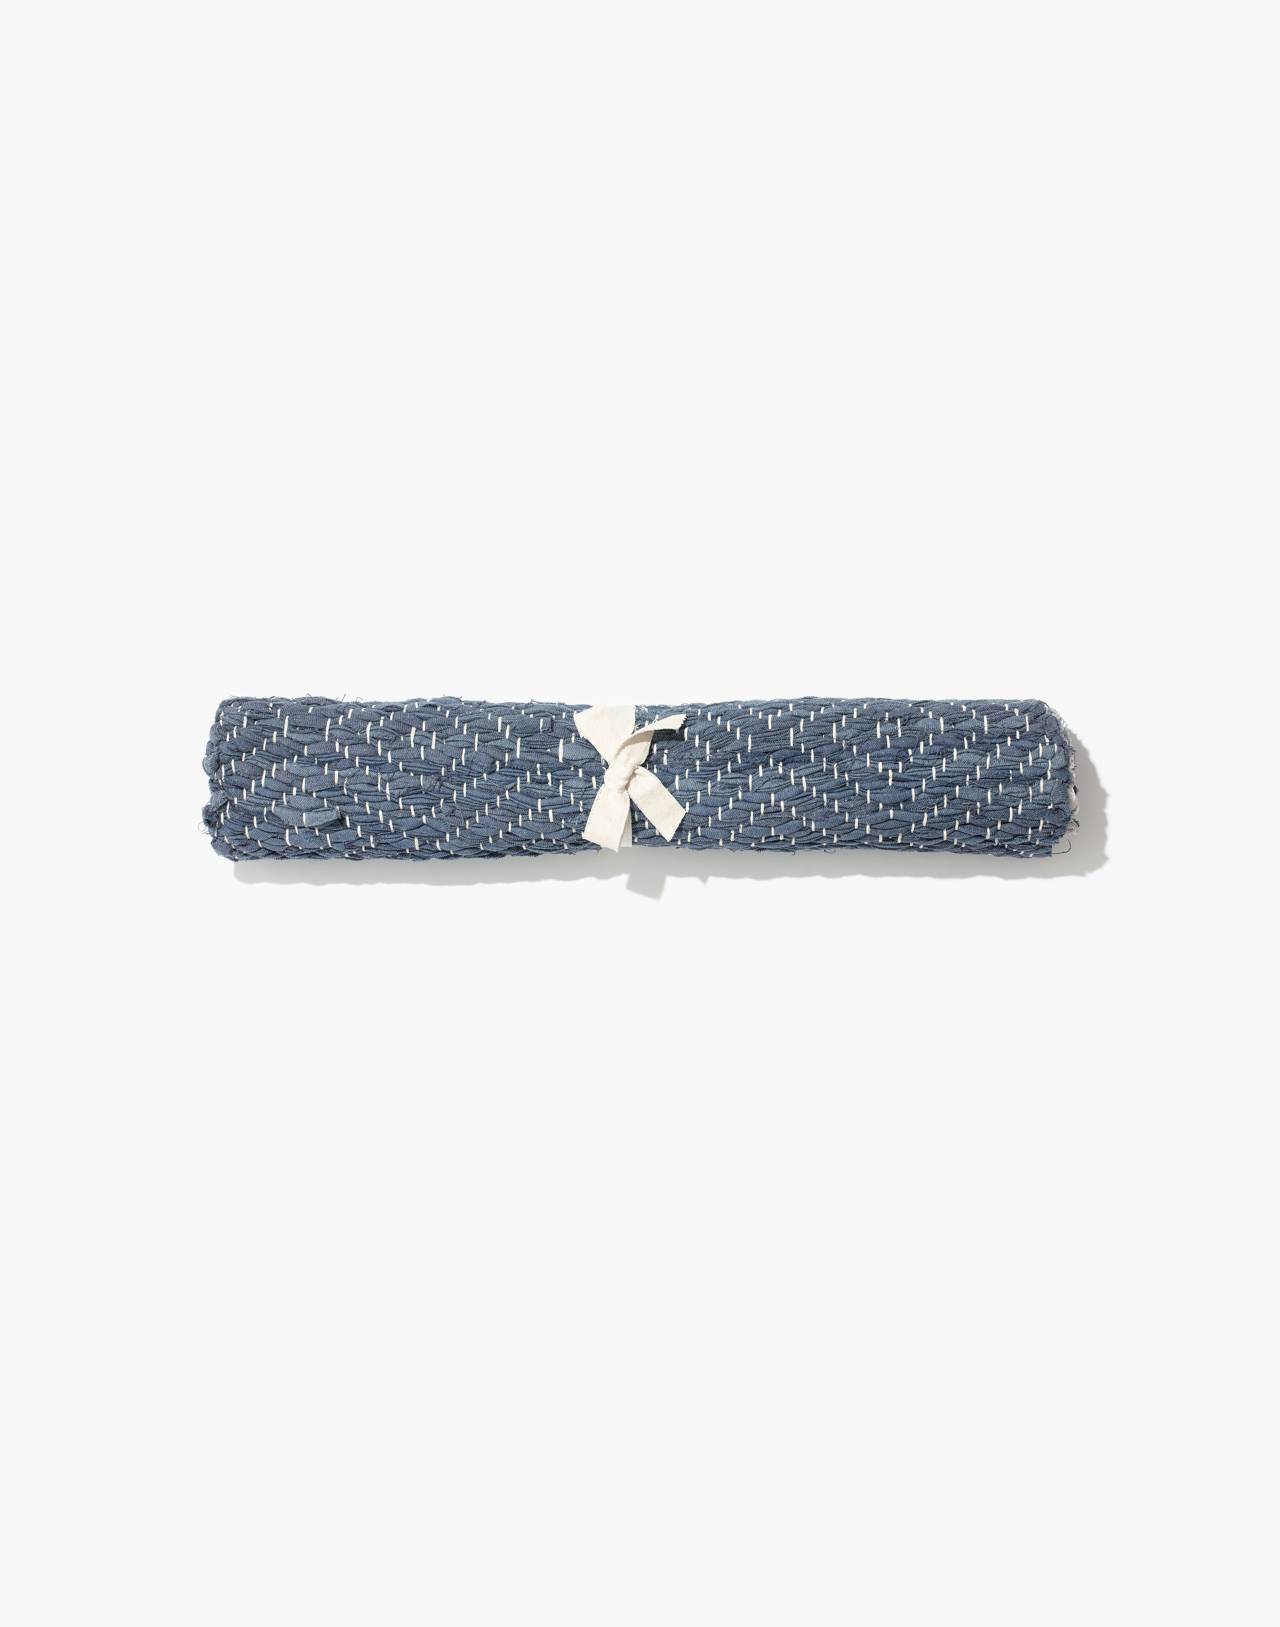 Madewell x The New Denim Project® Rug in indigo/white multi image 2